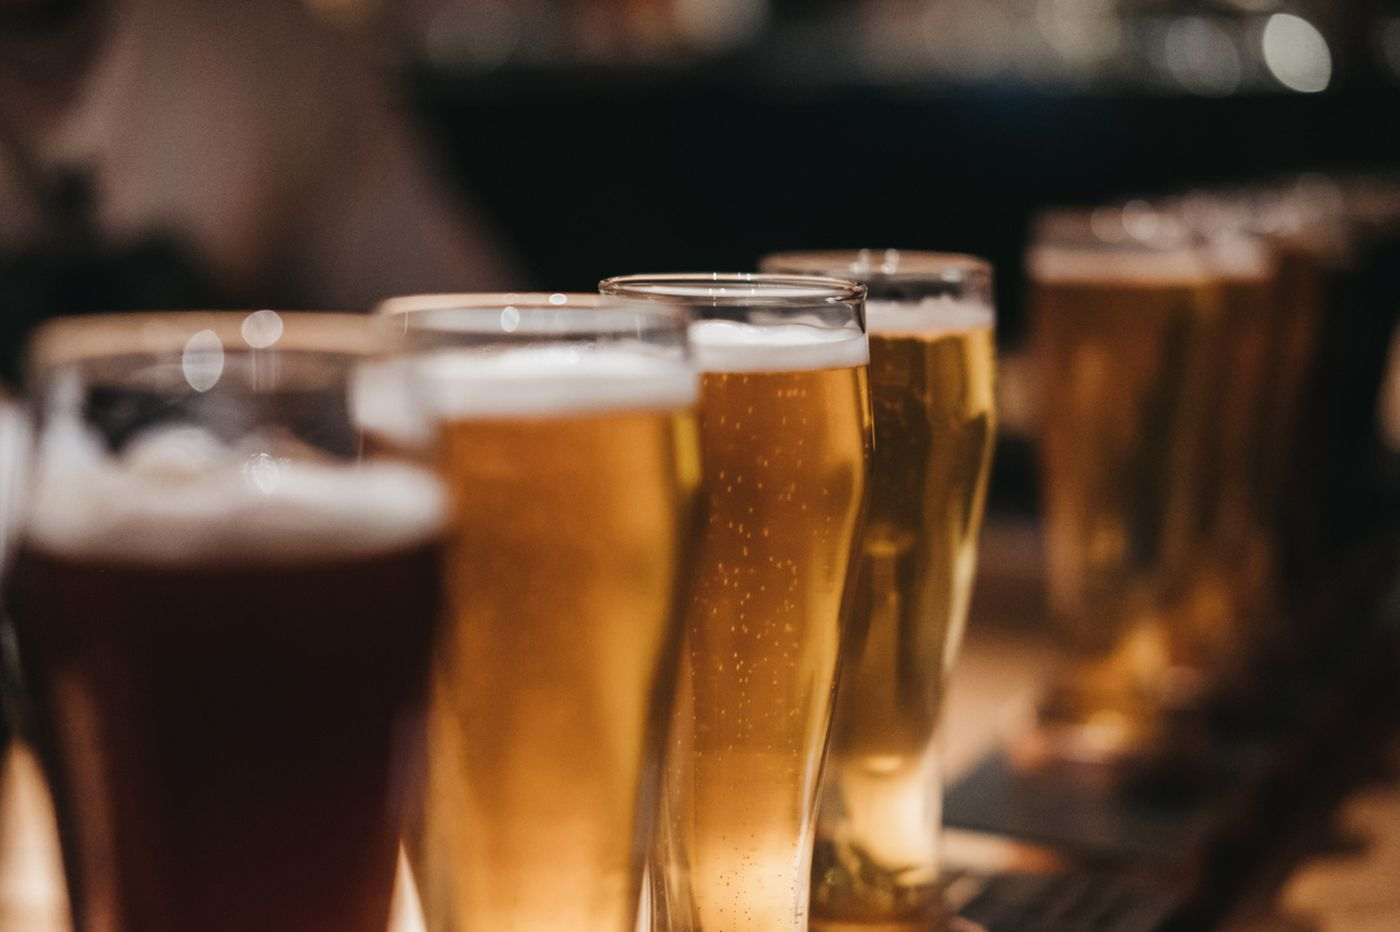 Big Philly Beerfest coming to Pa. Convention Center